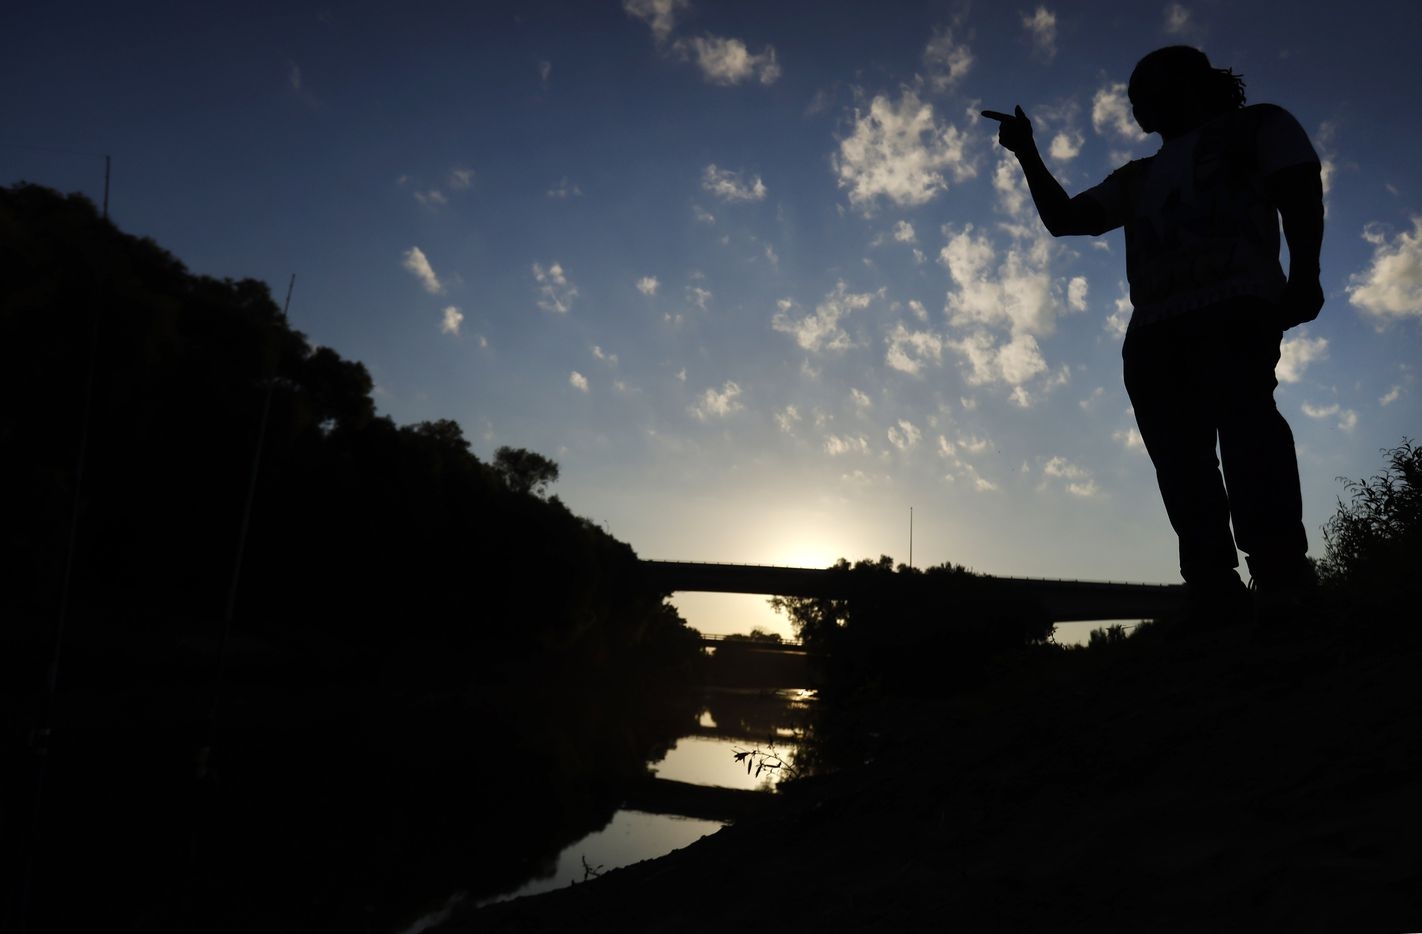 Odell Allen watches his lines as he fishes for alligator gar in the Trinity River near the Westmoreland bridge, early Monday morning, August 30, 2021. (Tom Fox/The Dallas Morning News)